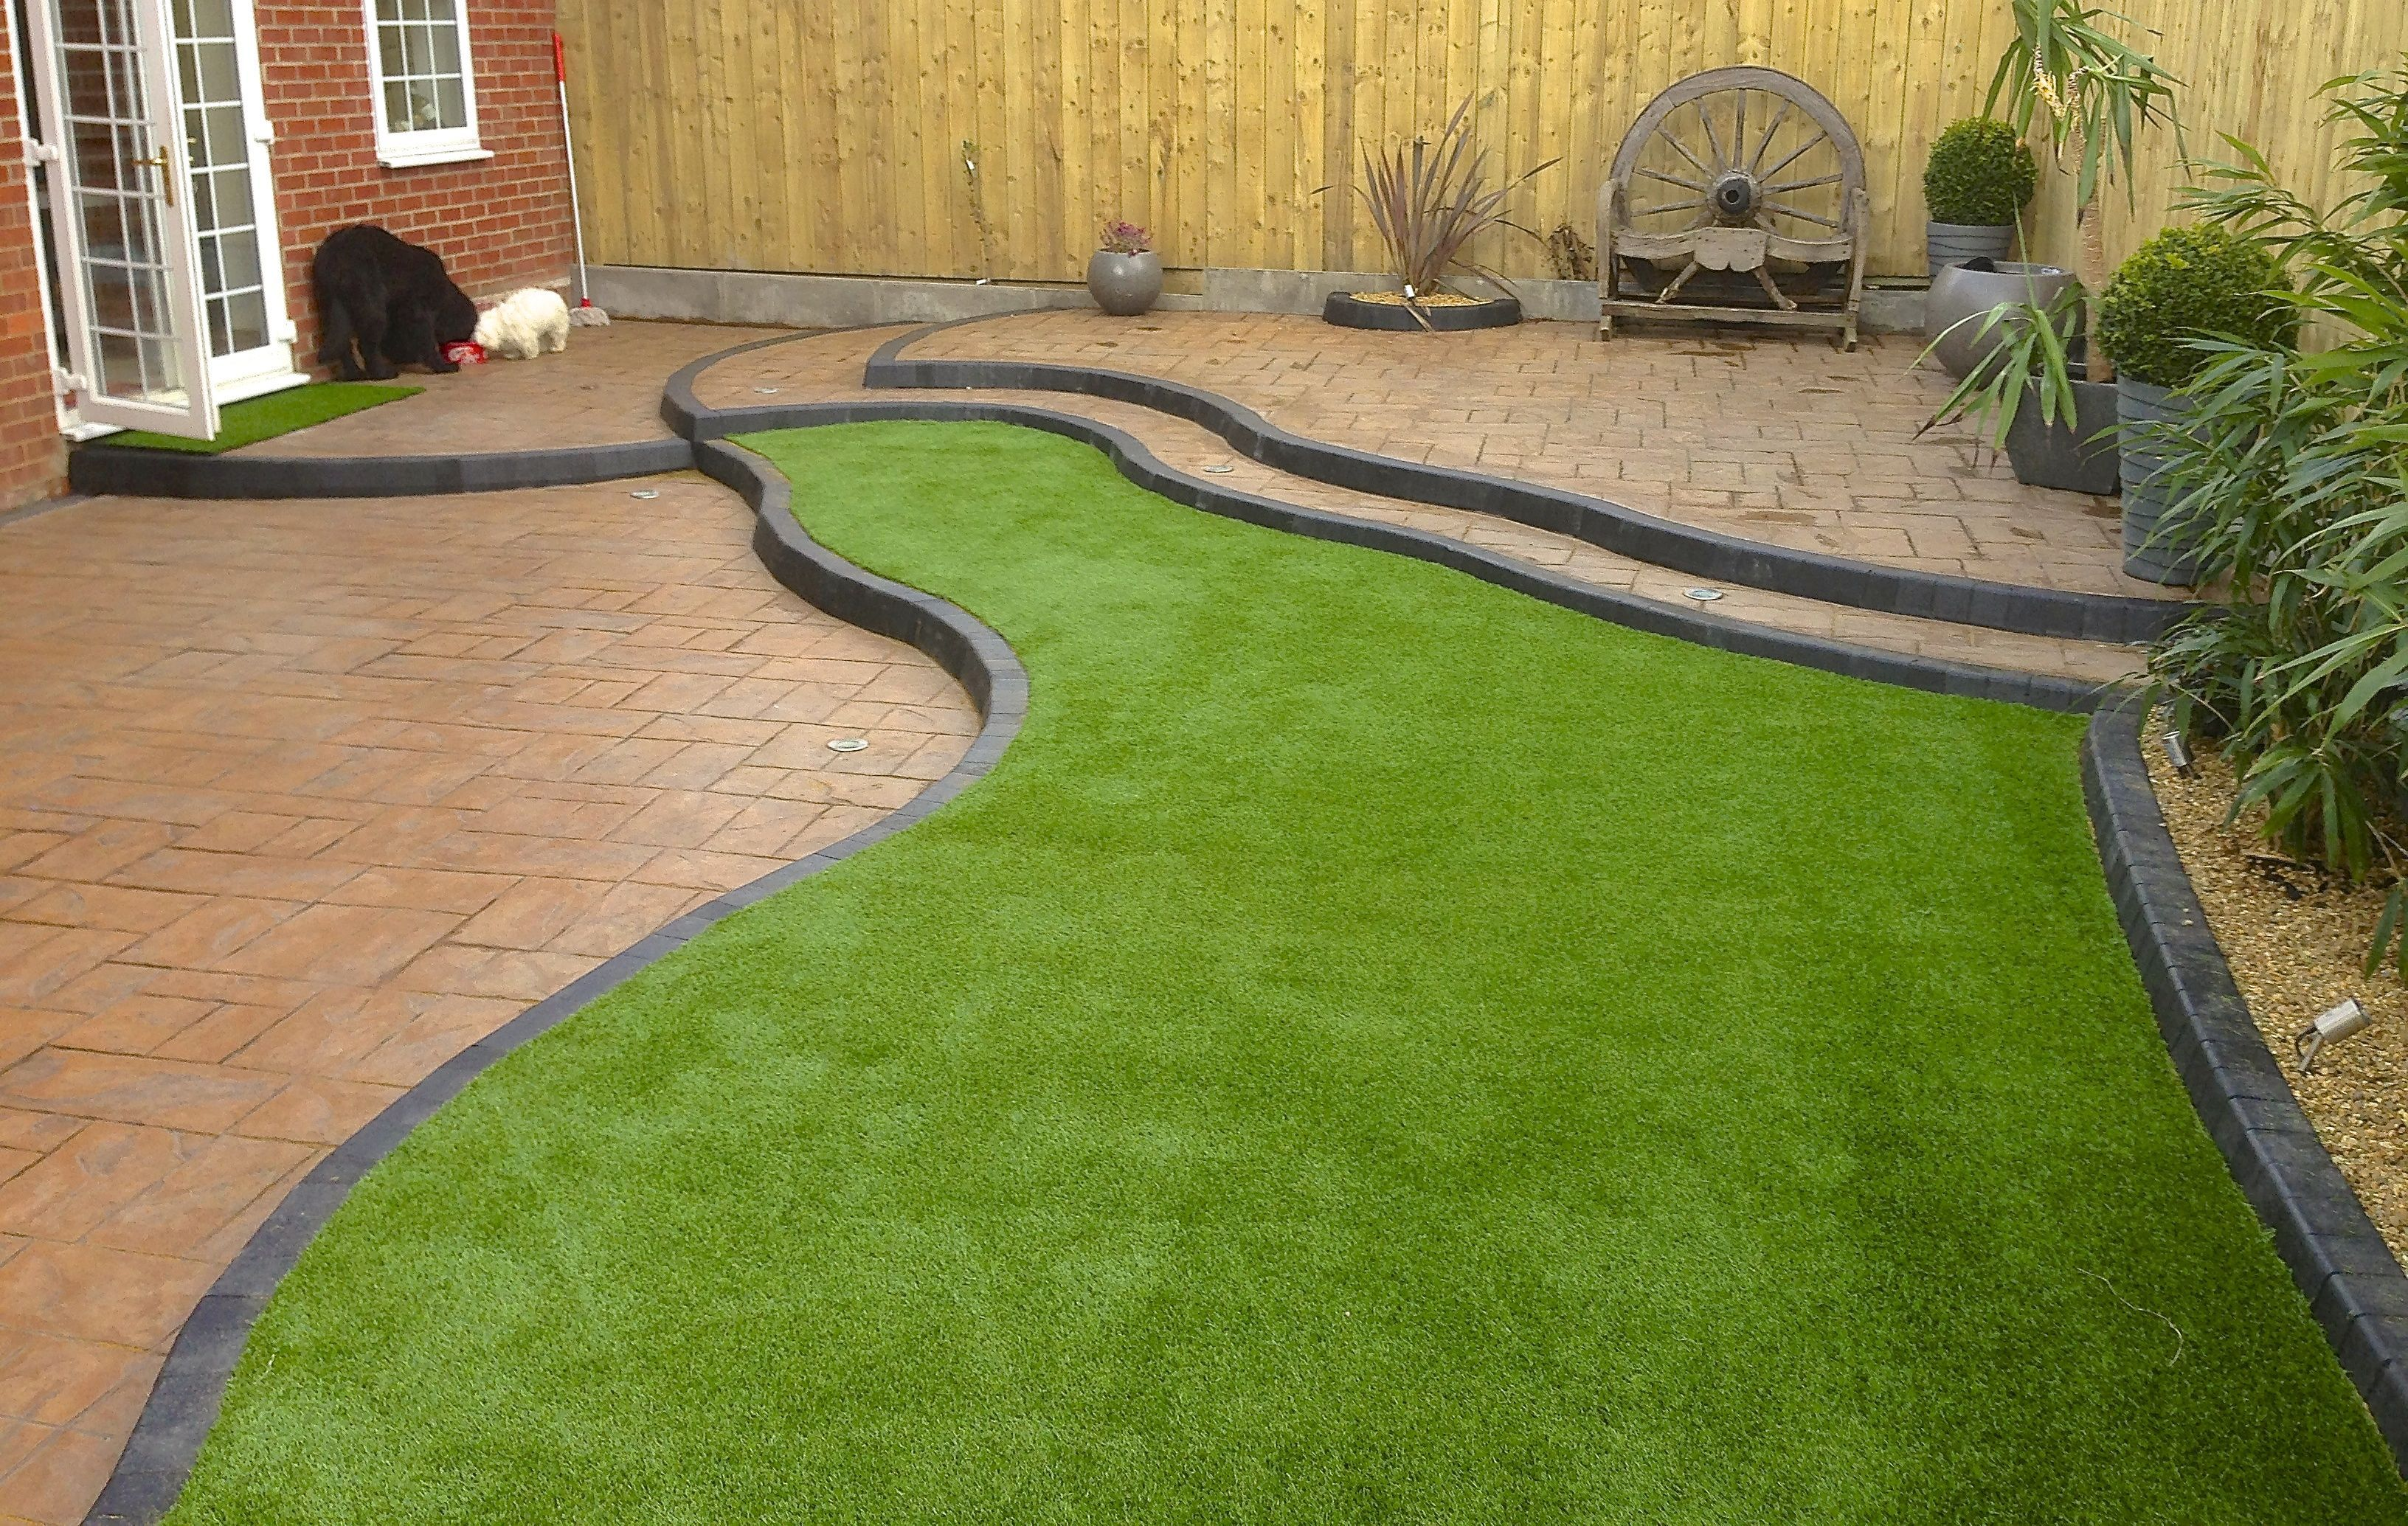 Garden Design Artificial Grass turf installer artificial grass | dream pets: bengal, serval